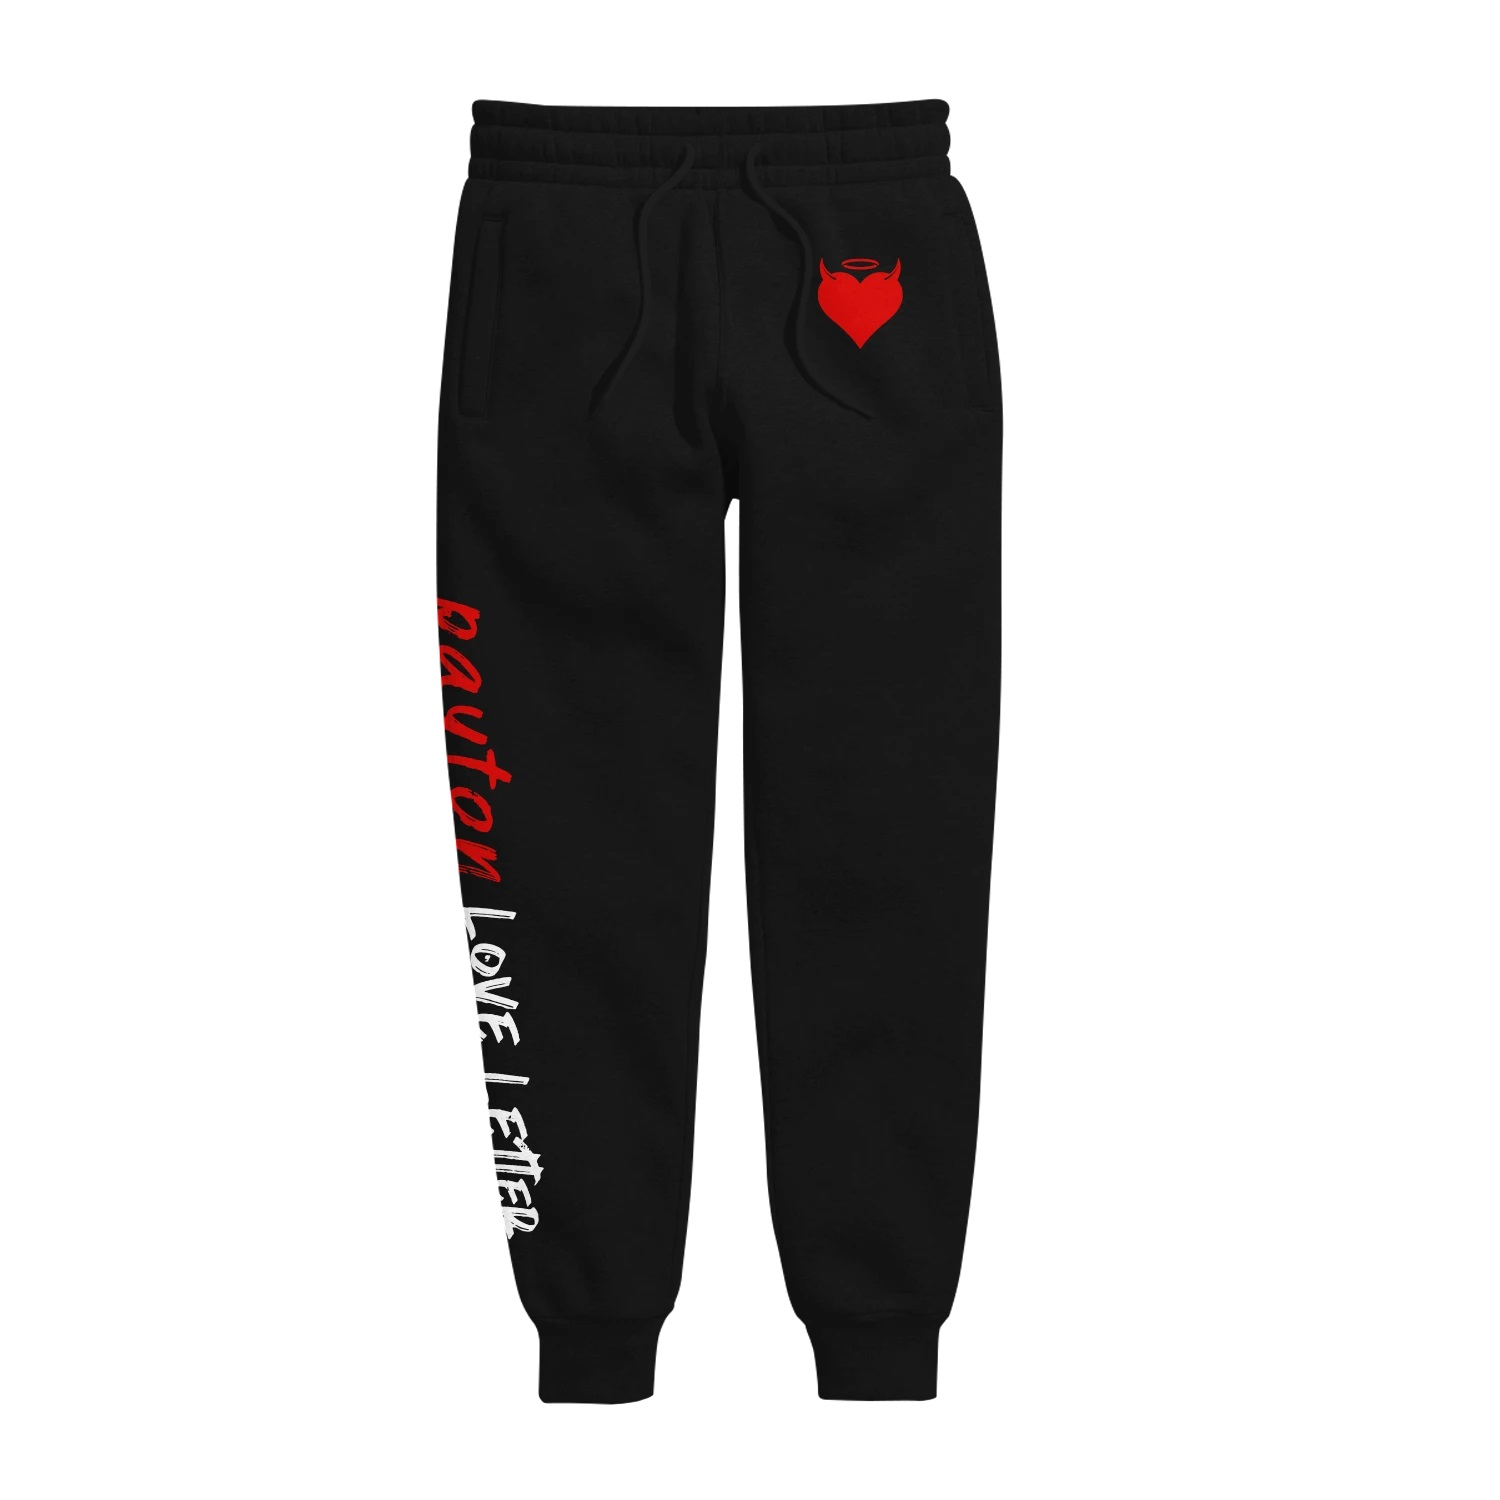 Payton Moormeier Cool Printed Jogger High Quality Sport Trouser Fashion 2020 New Comfortable Casual Pencil Pants Mid Full Length